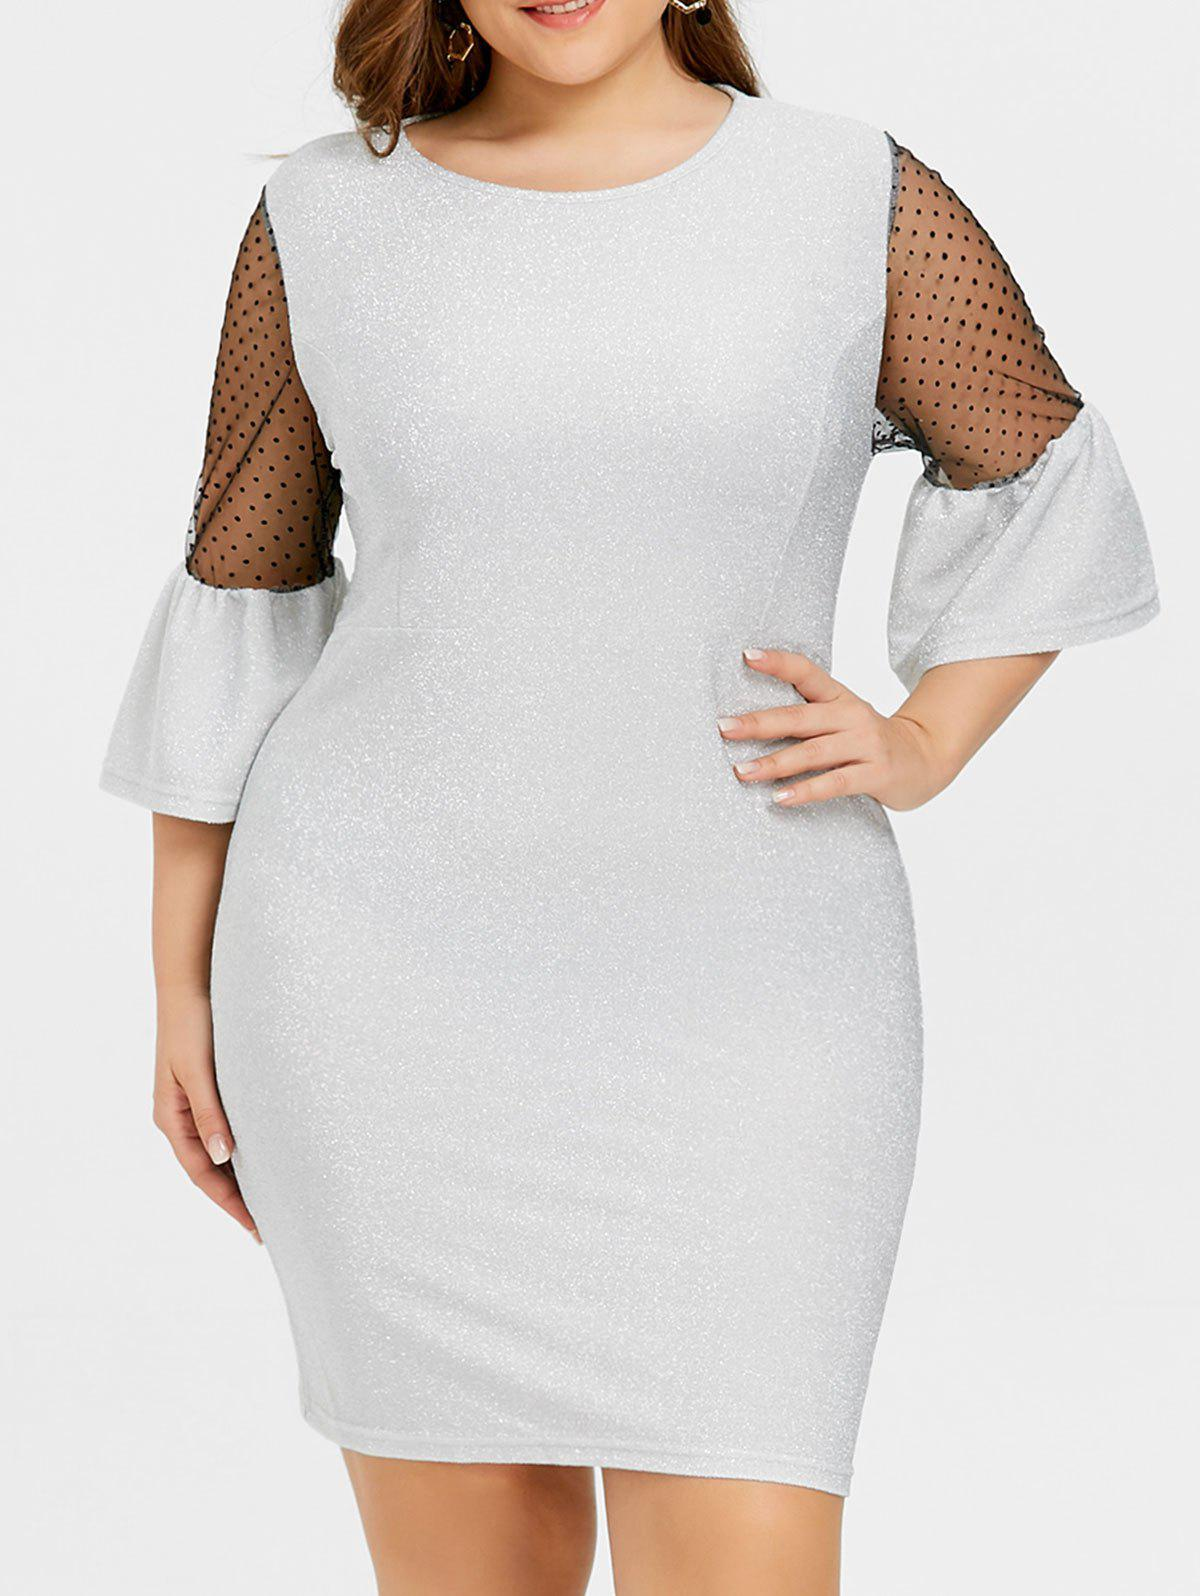 Fancy Plus Size Bell Sleeve Sparkly Dress